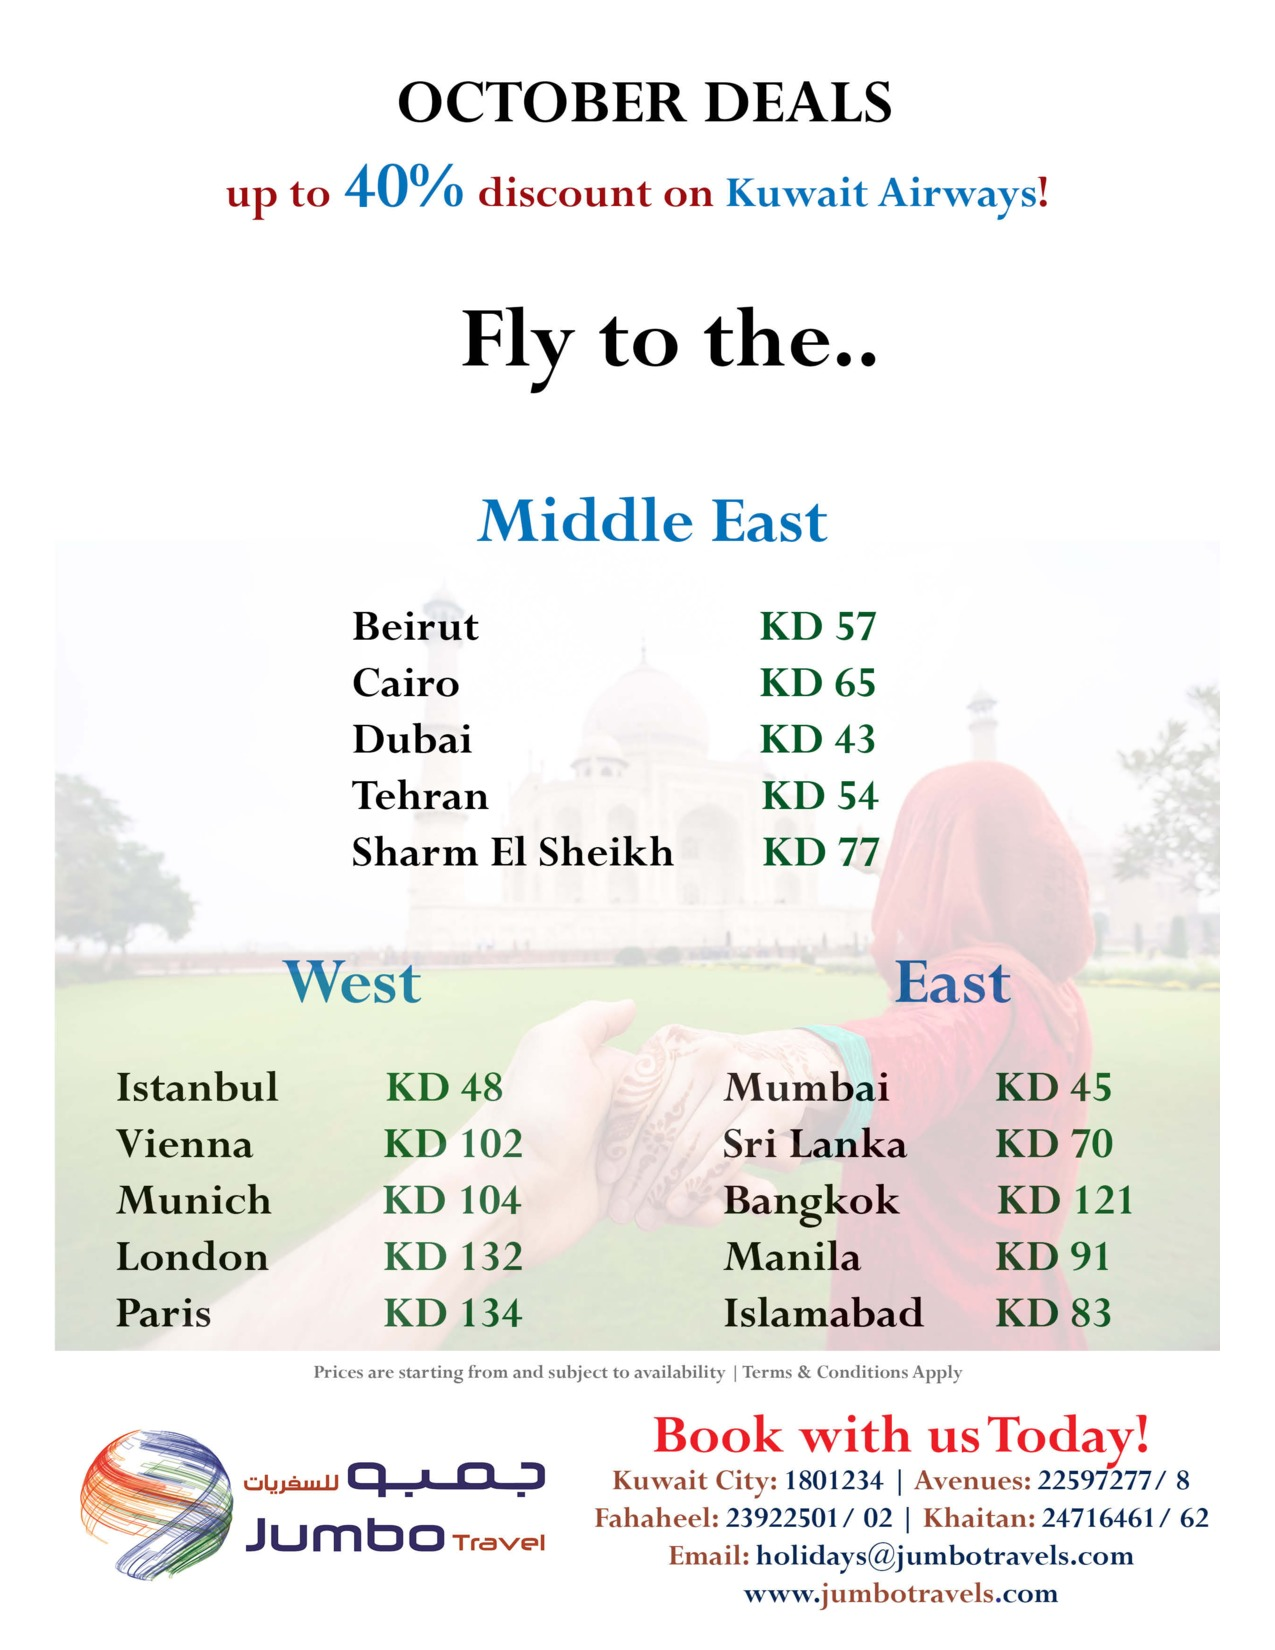 october-deals-up-to-40-percent-discount-on-kuwait-airways-kuwait